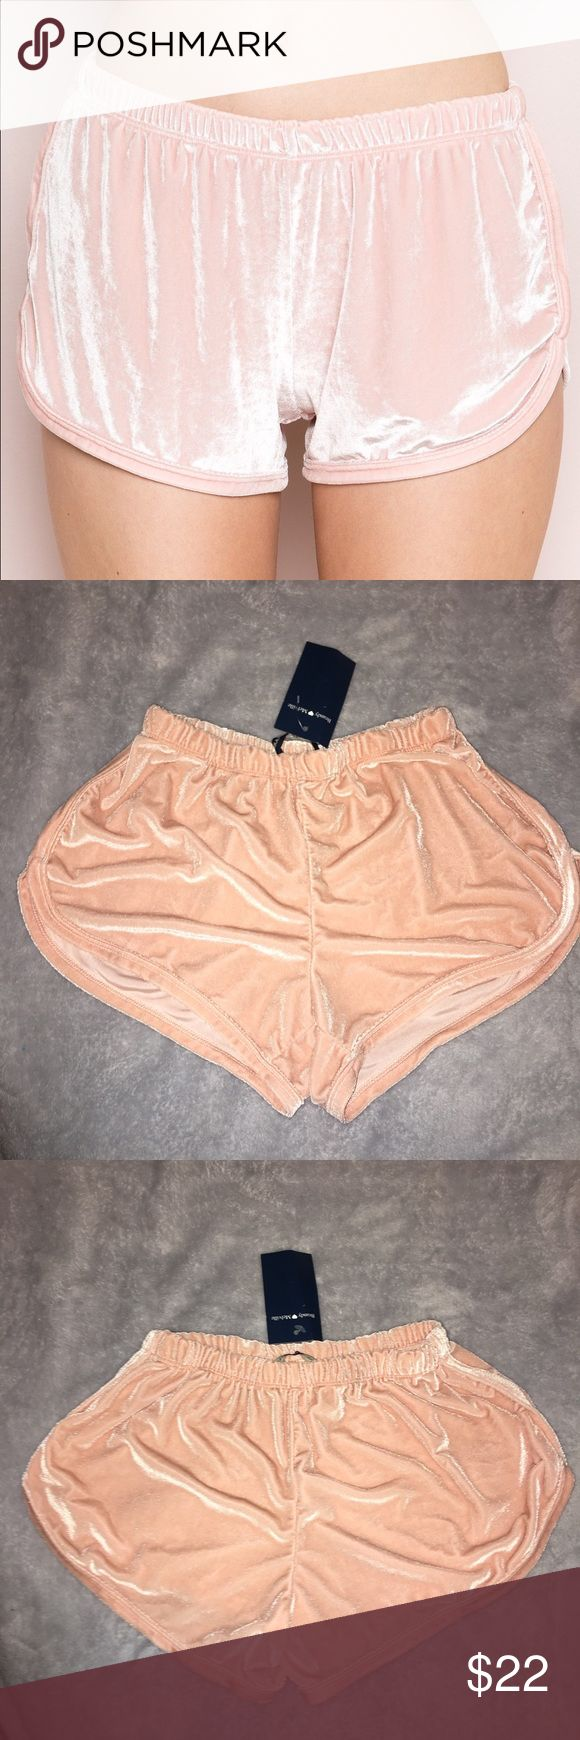 24 HR FLASH SALE Brandy Melville Velvet Lisette BNWT • Fits XS-M Perfect Condition *Sorry for bad lighting true color shown in first pic* Price is Firm ❣️ Brandy Melville Shorts